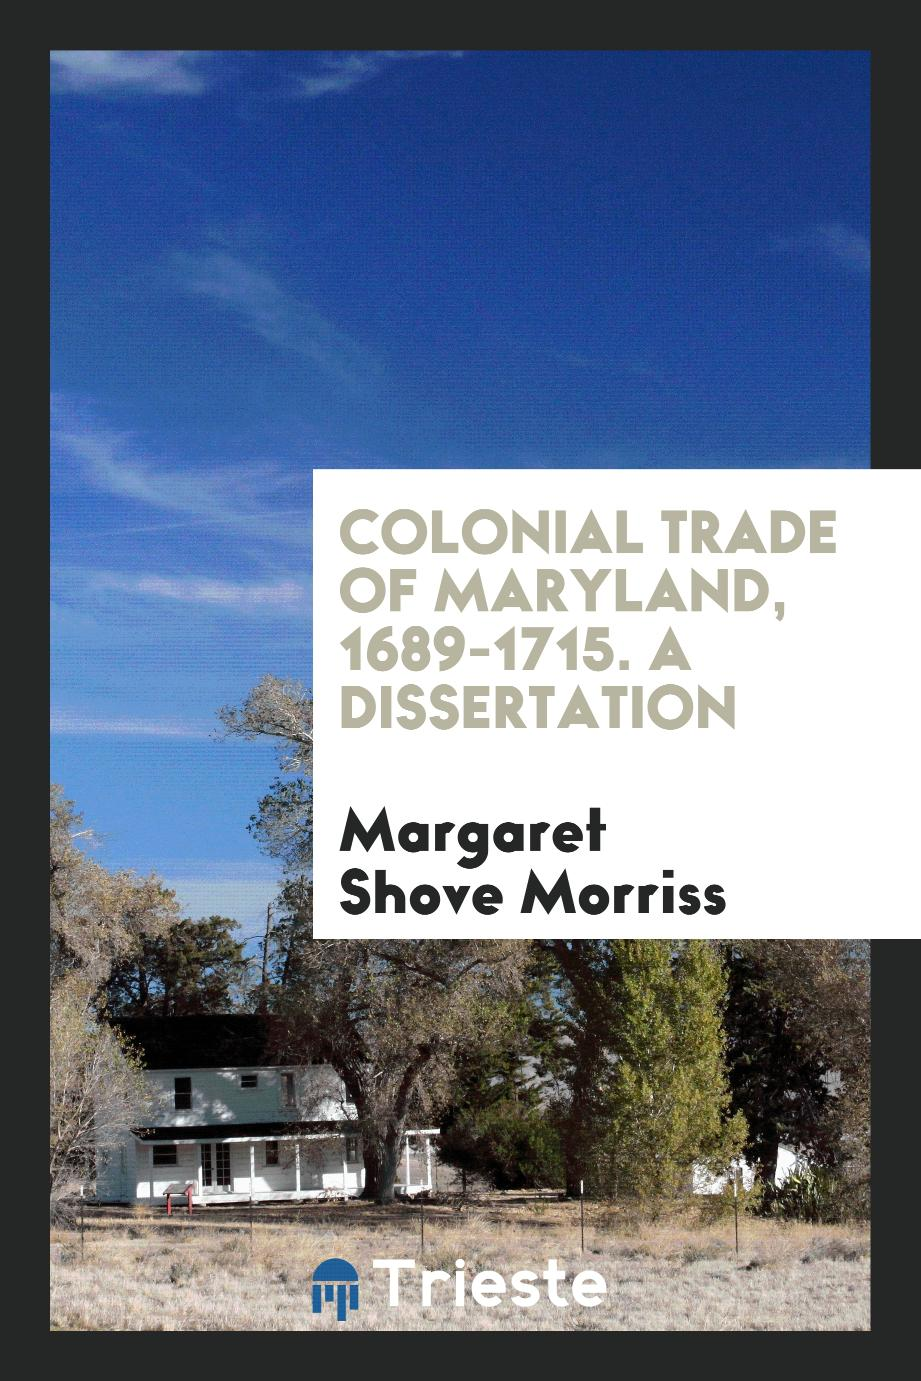 Colonial Trade of Maryland, 1689-1715. A Dissertation